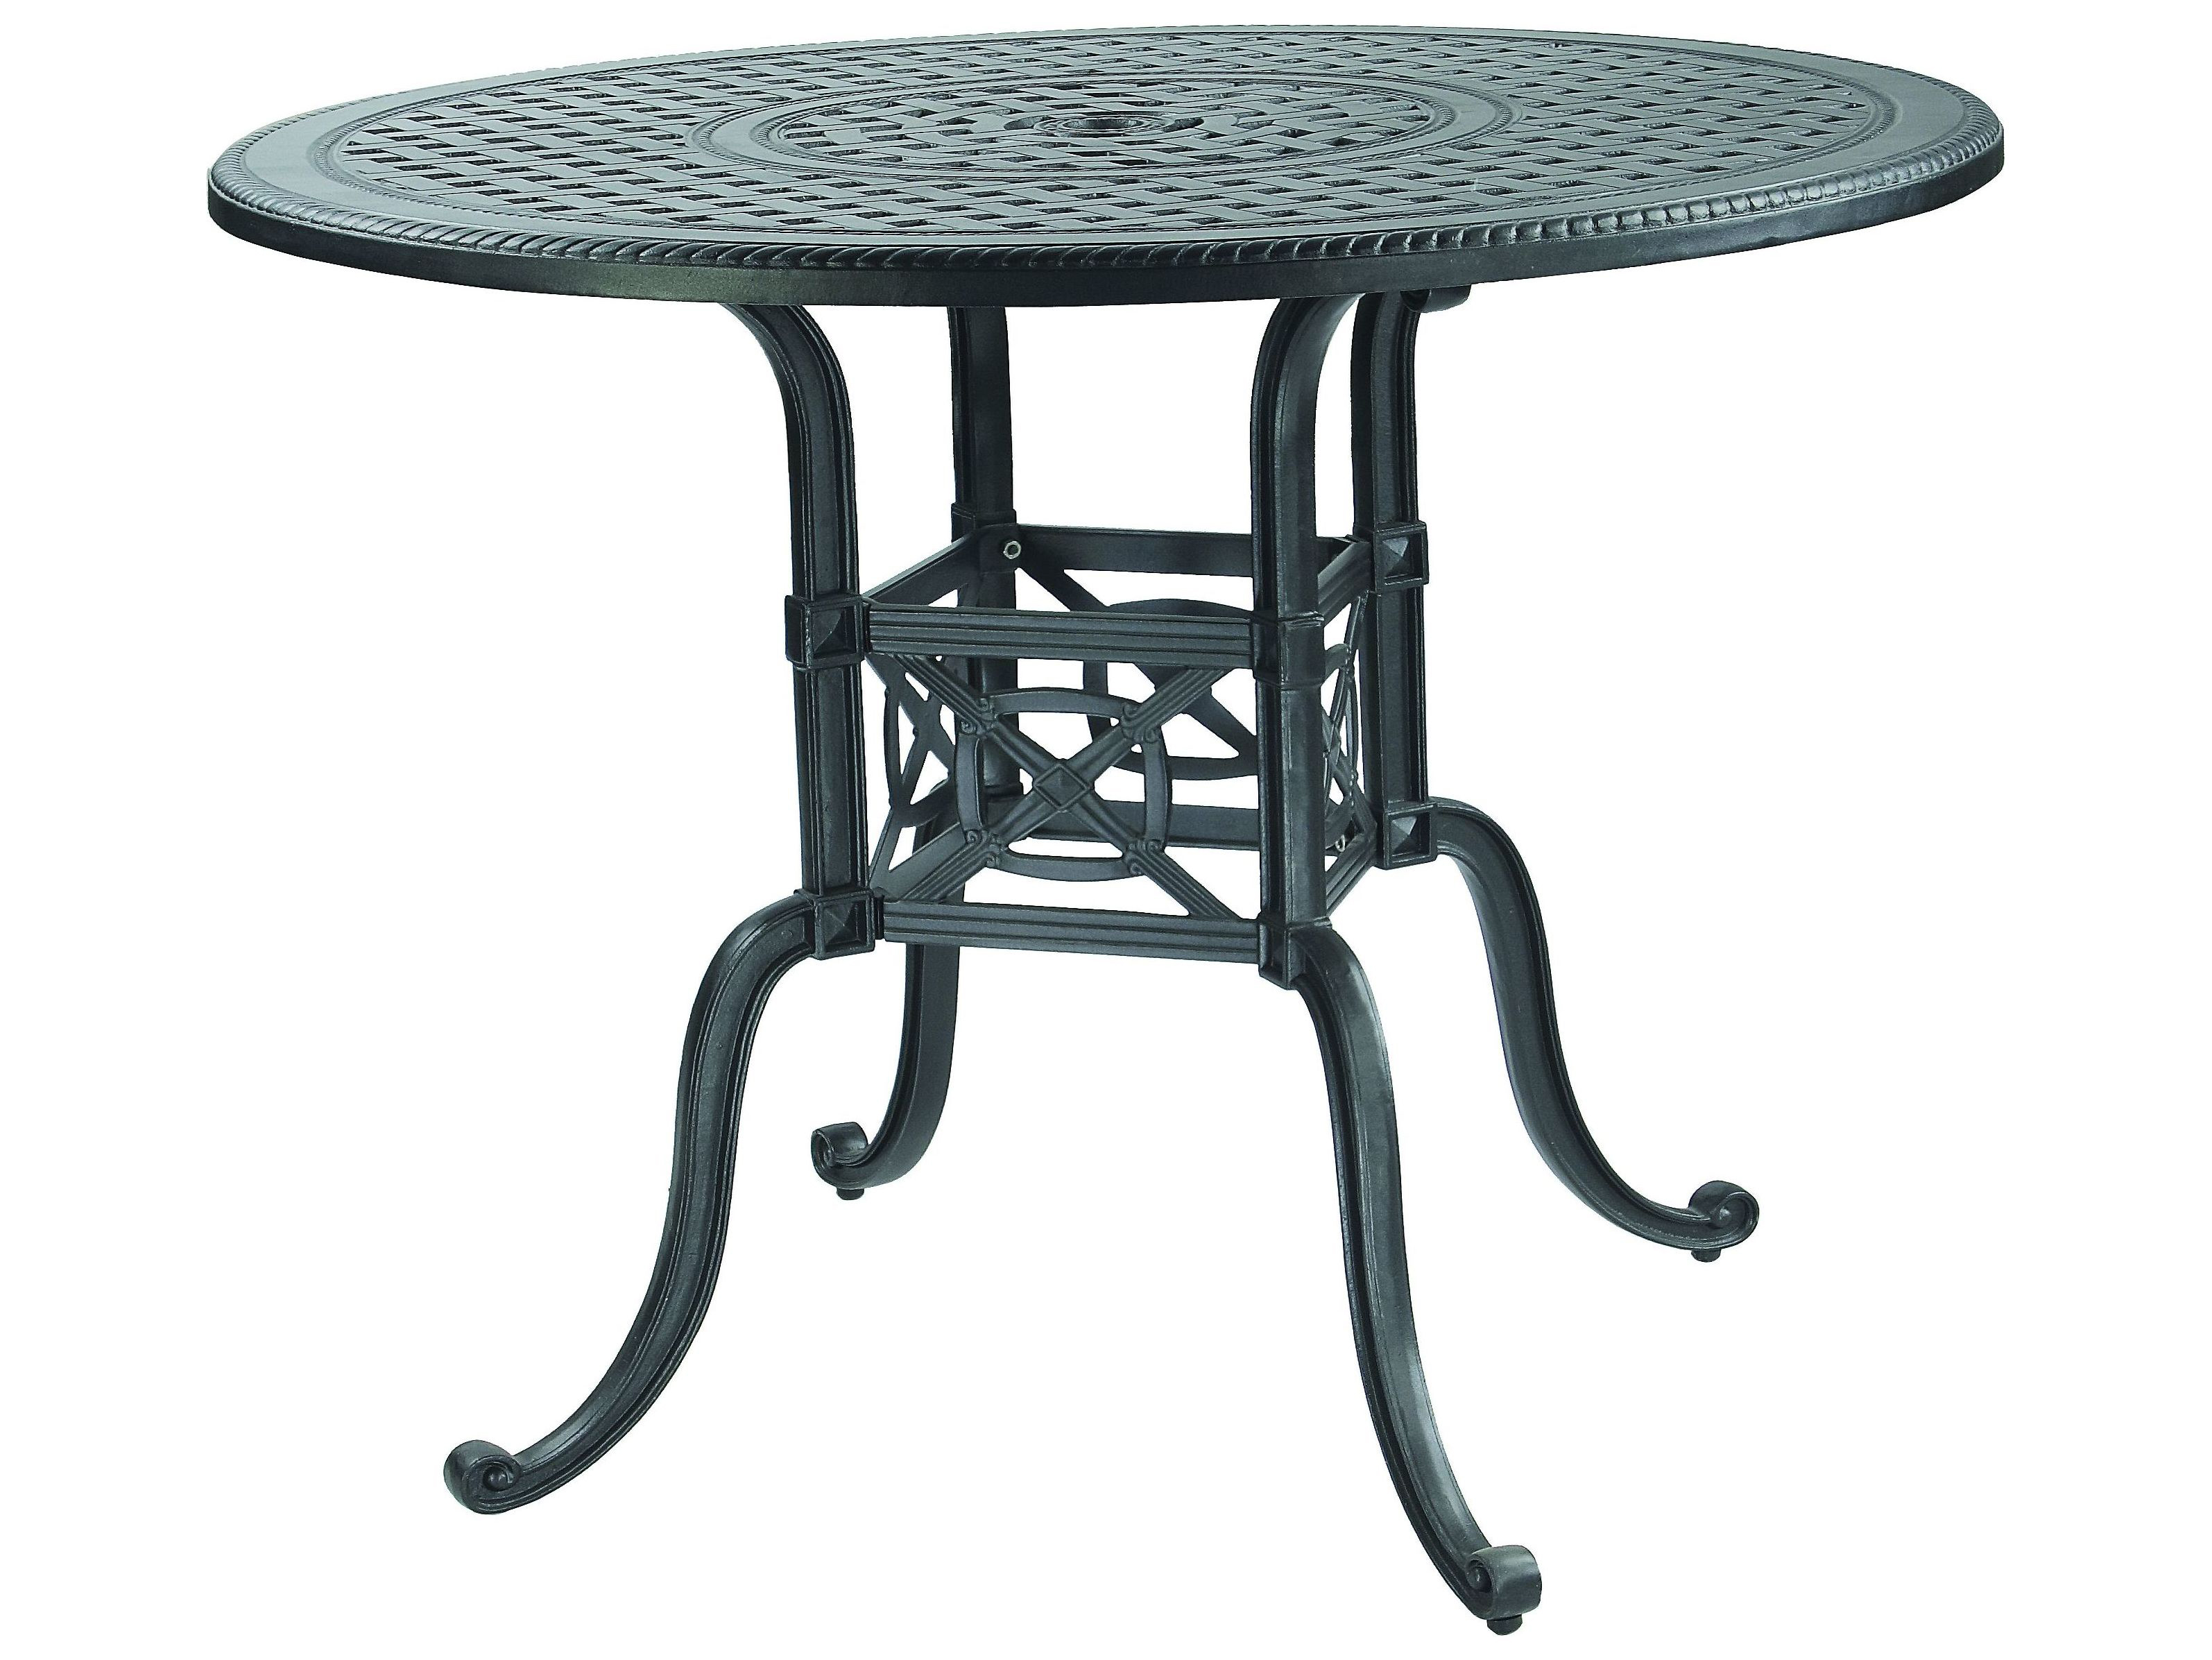 gensun grand terrace cast aluminum 54 round balcony gathering table with umbrella hole 1034na54. Black Bedroom Furniture Sets. Home Design Ideas